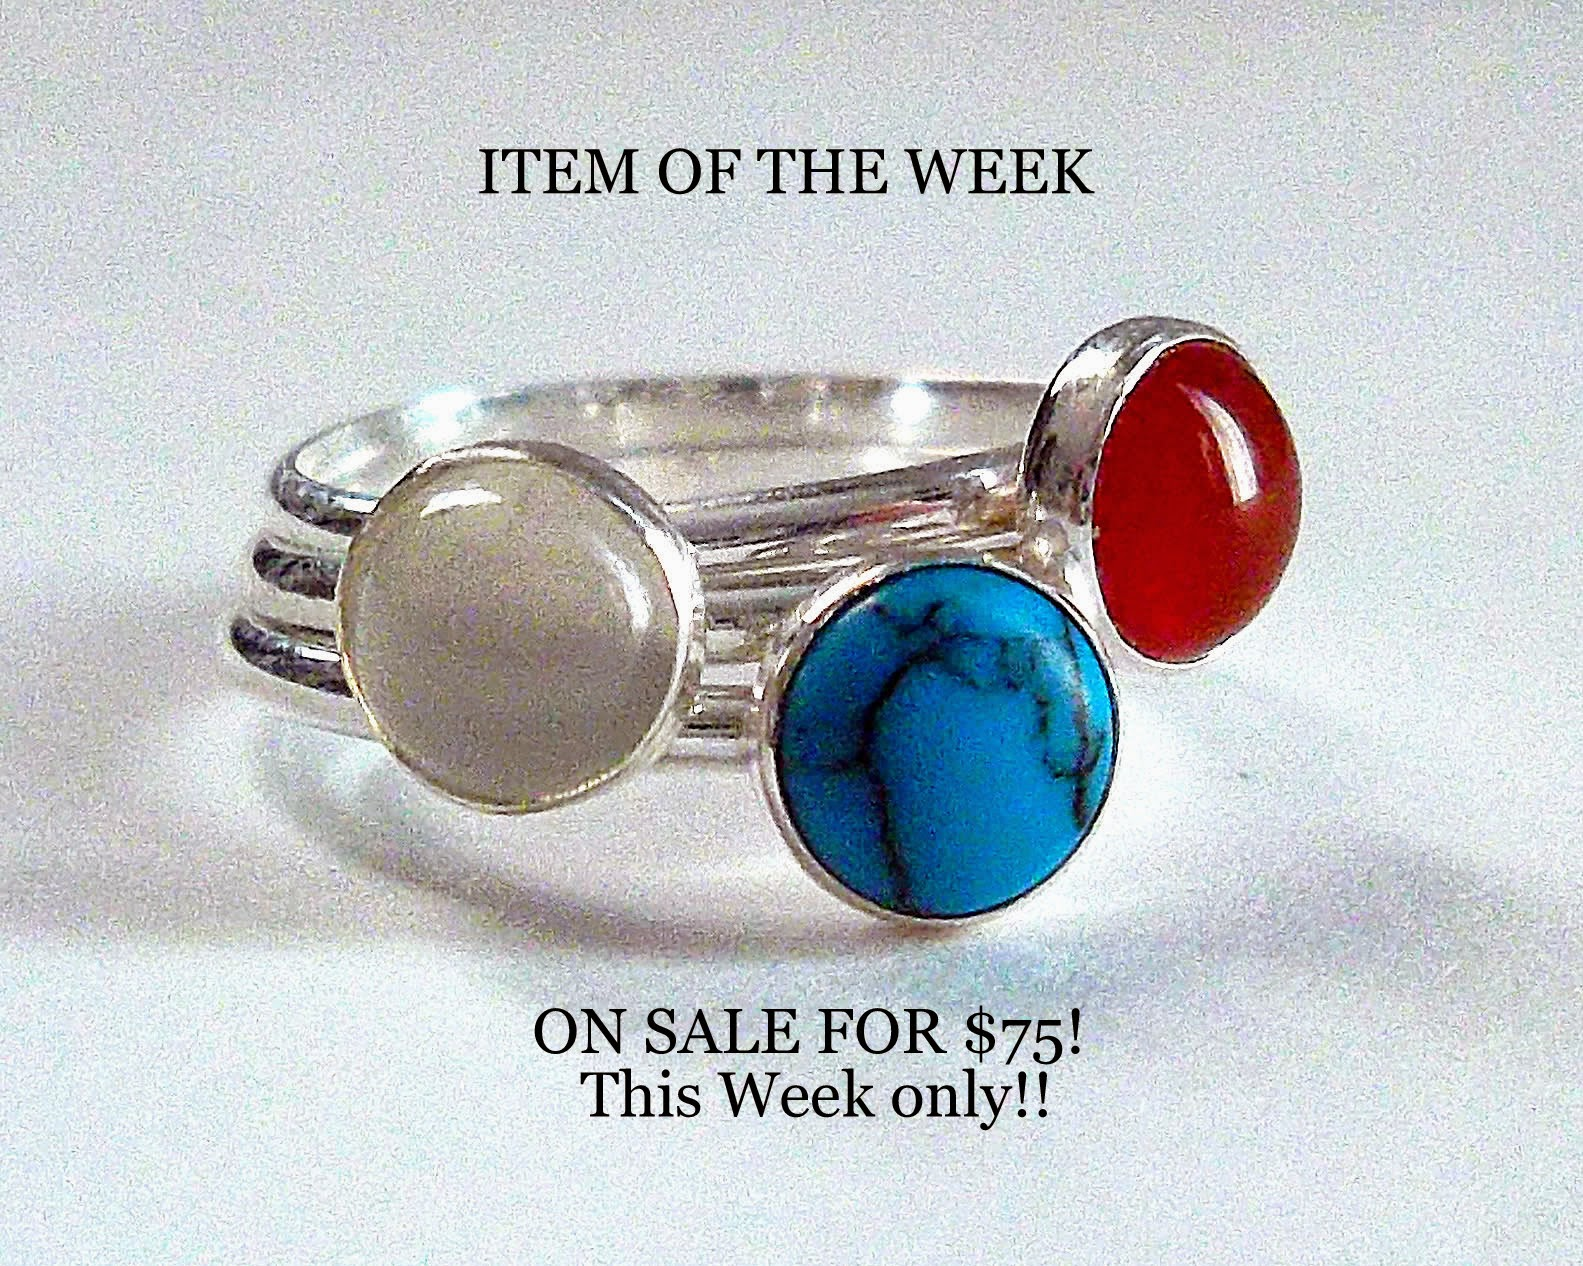 https://www.etsy.com/listing/183731942/gemstone-stackable-rings-set-of-three-3?ref=shop_home_active_2